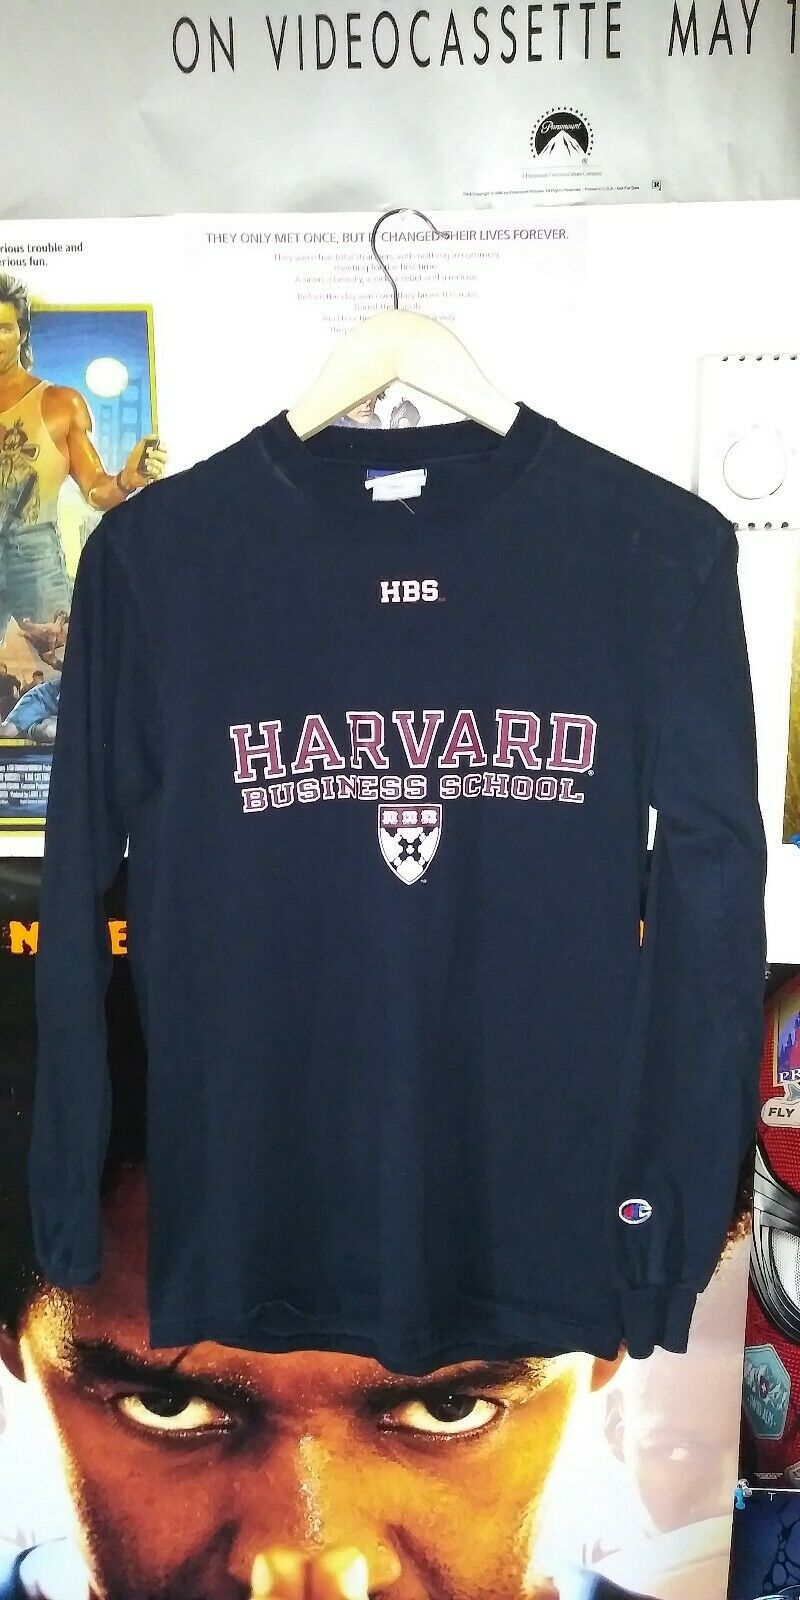 Vtg Champion Brand Harvard University Business School Long Sleeve Shirt Small 2